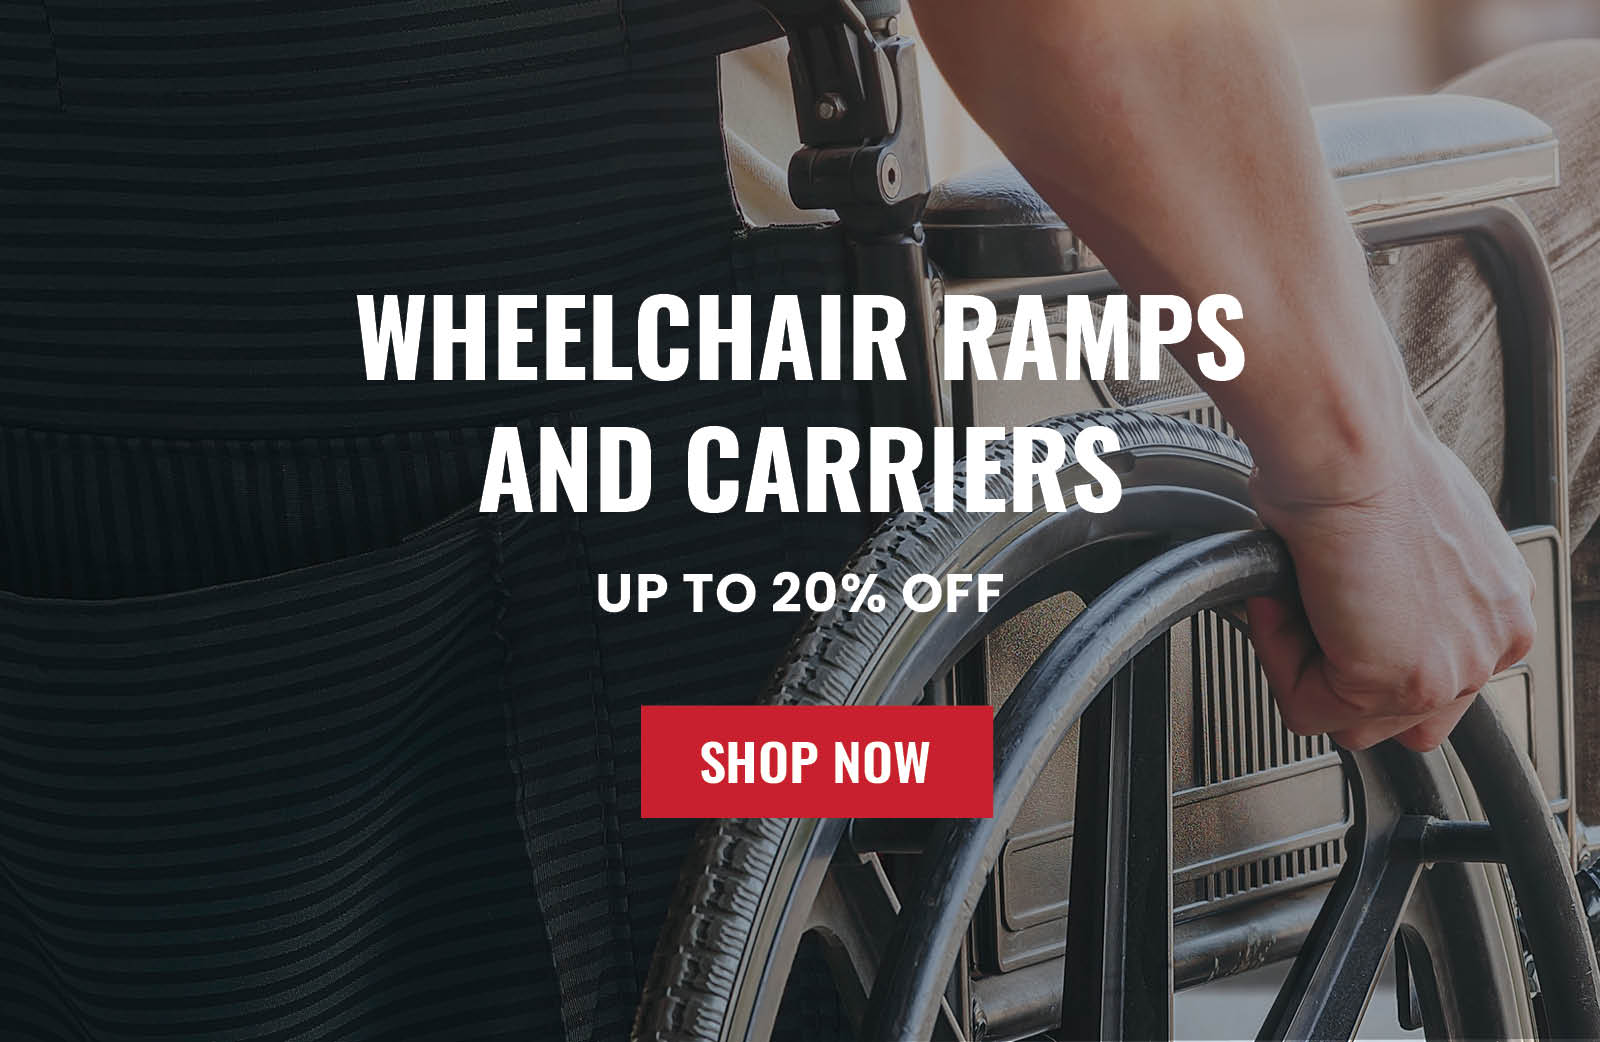 Save up to 20% on Wheelchair Ramps and Carriers